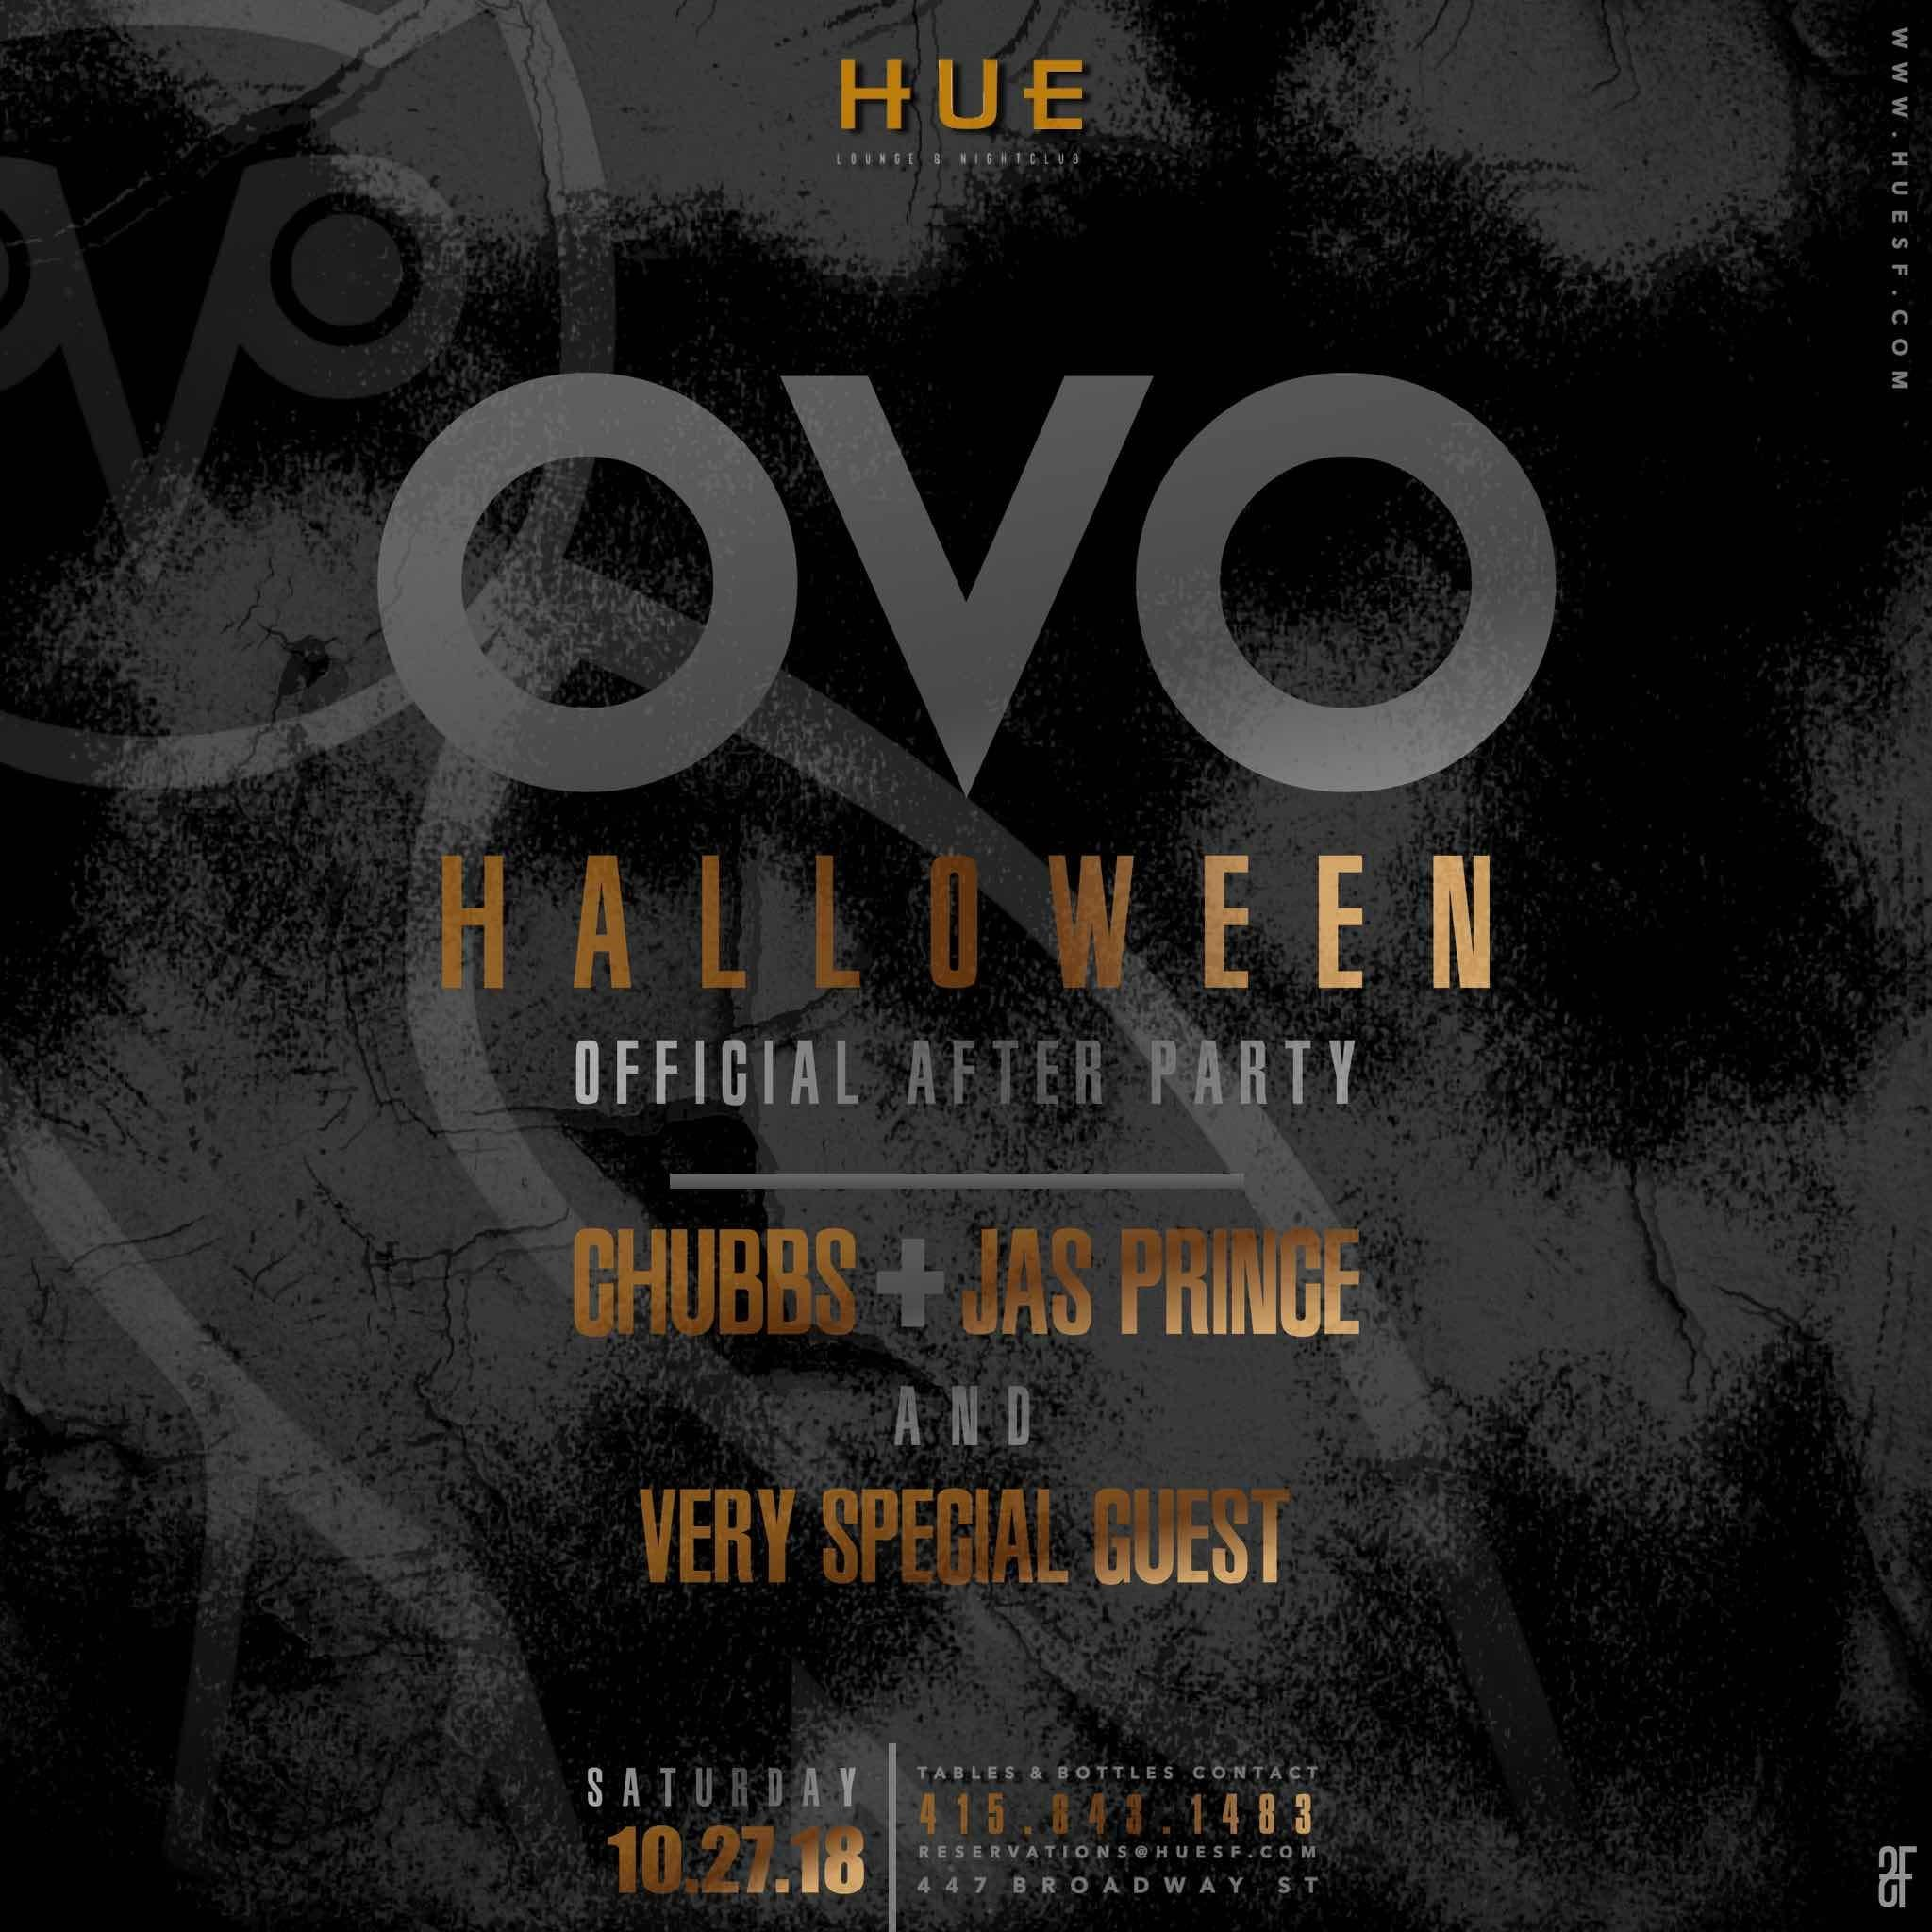 Haunted Party Bus to OVO party(Hue SF) and Af